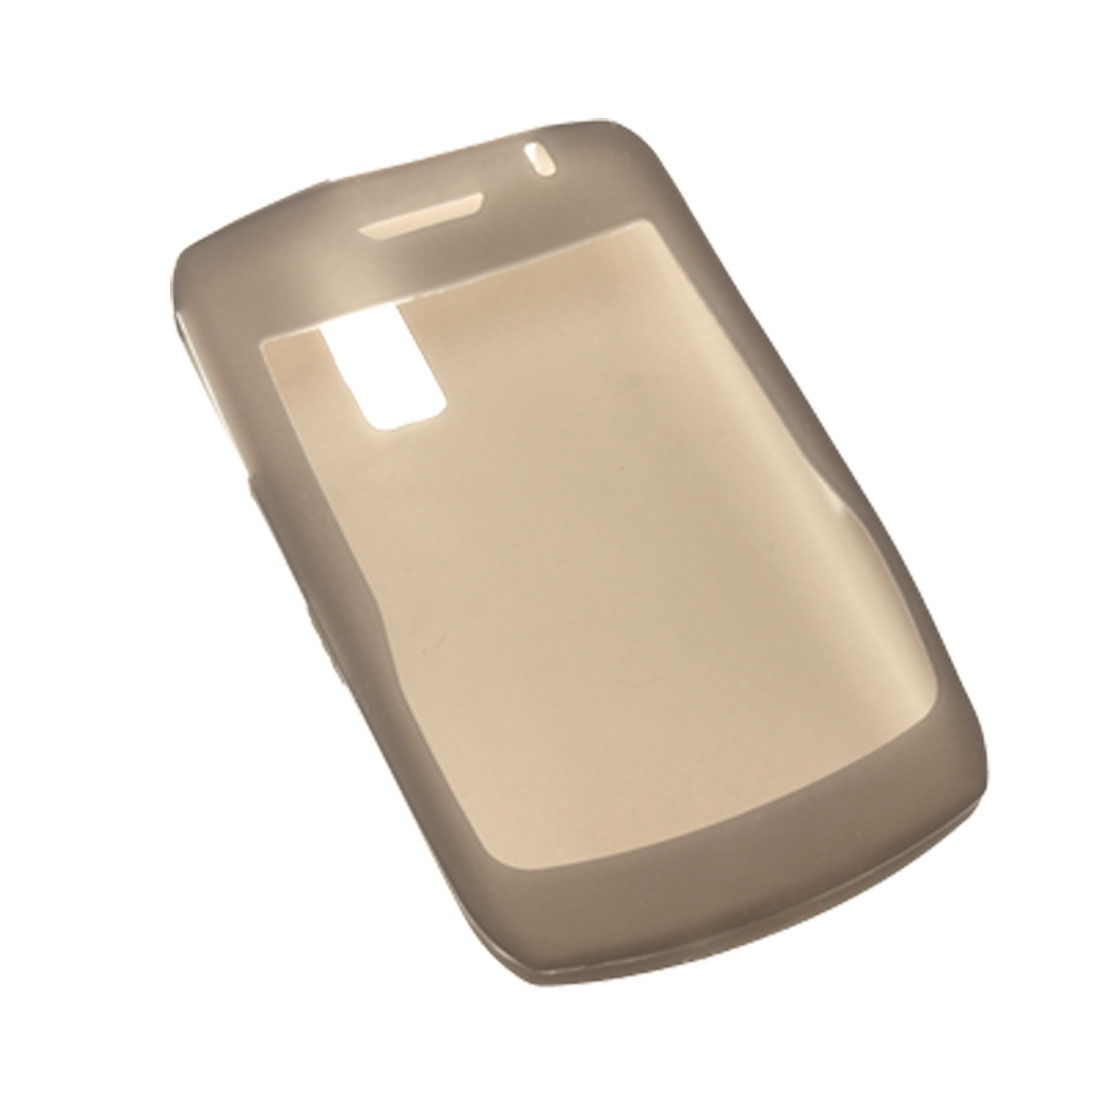 Gray Silicone Skin Case for BlackBerry Curve 8300 8310 8320